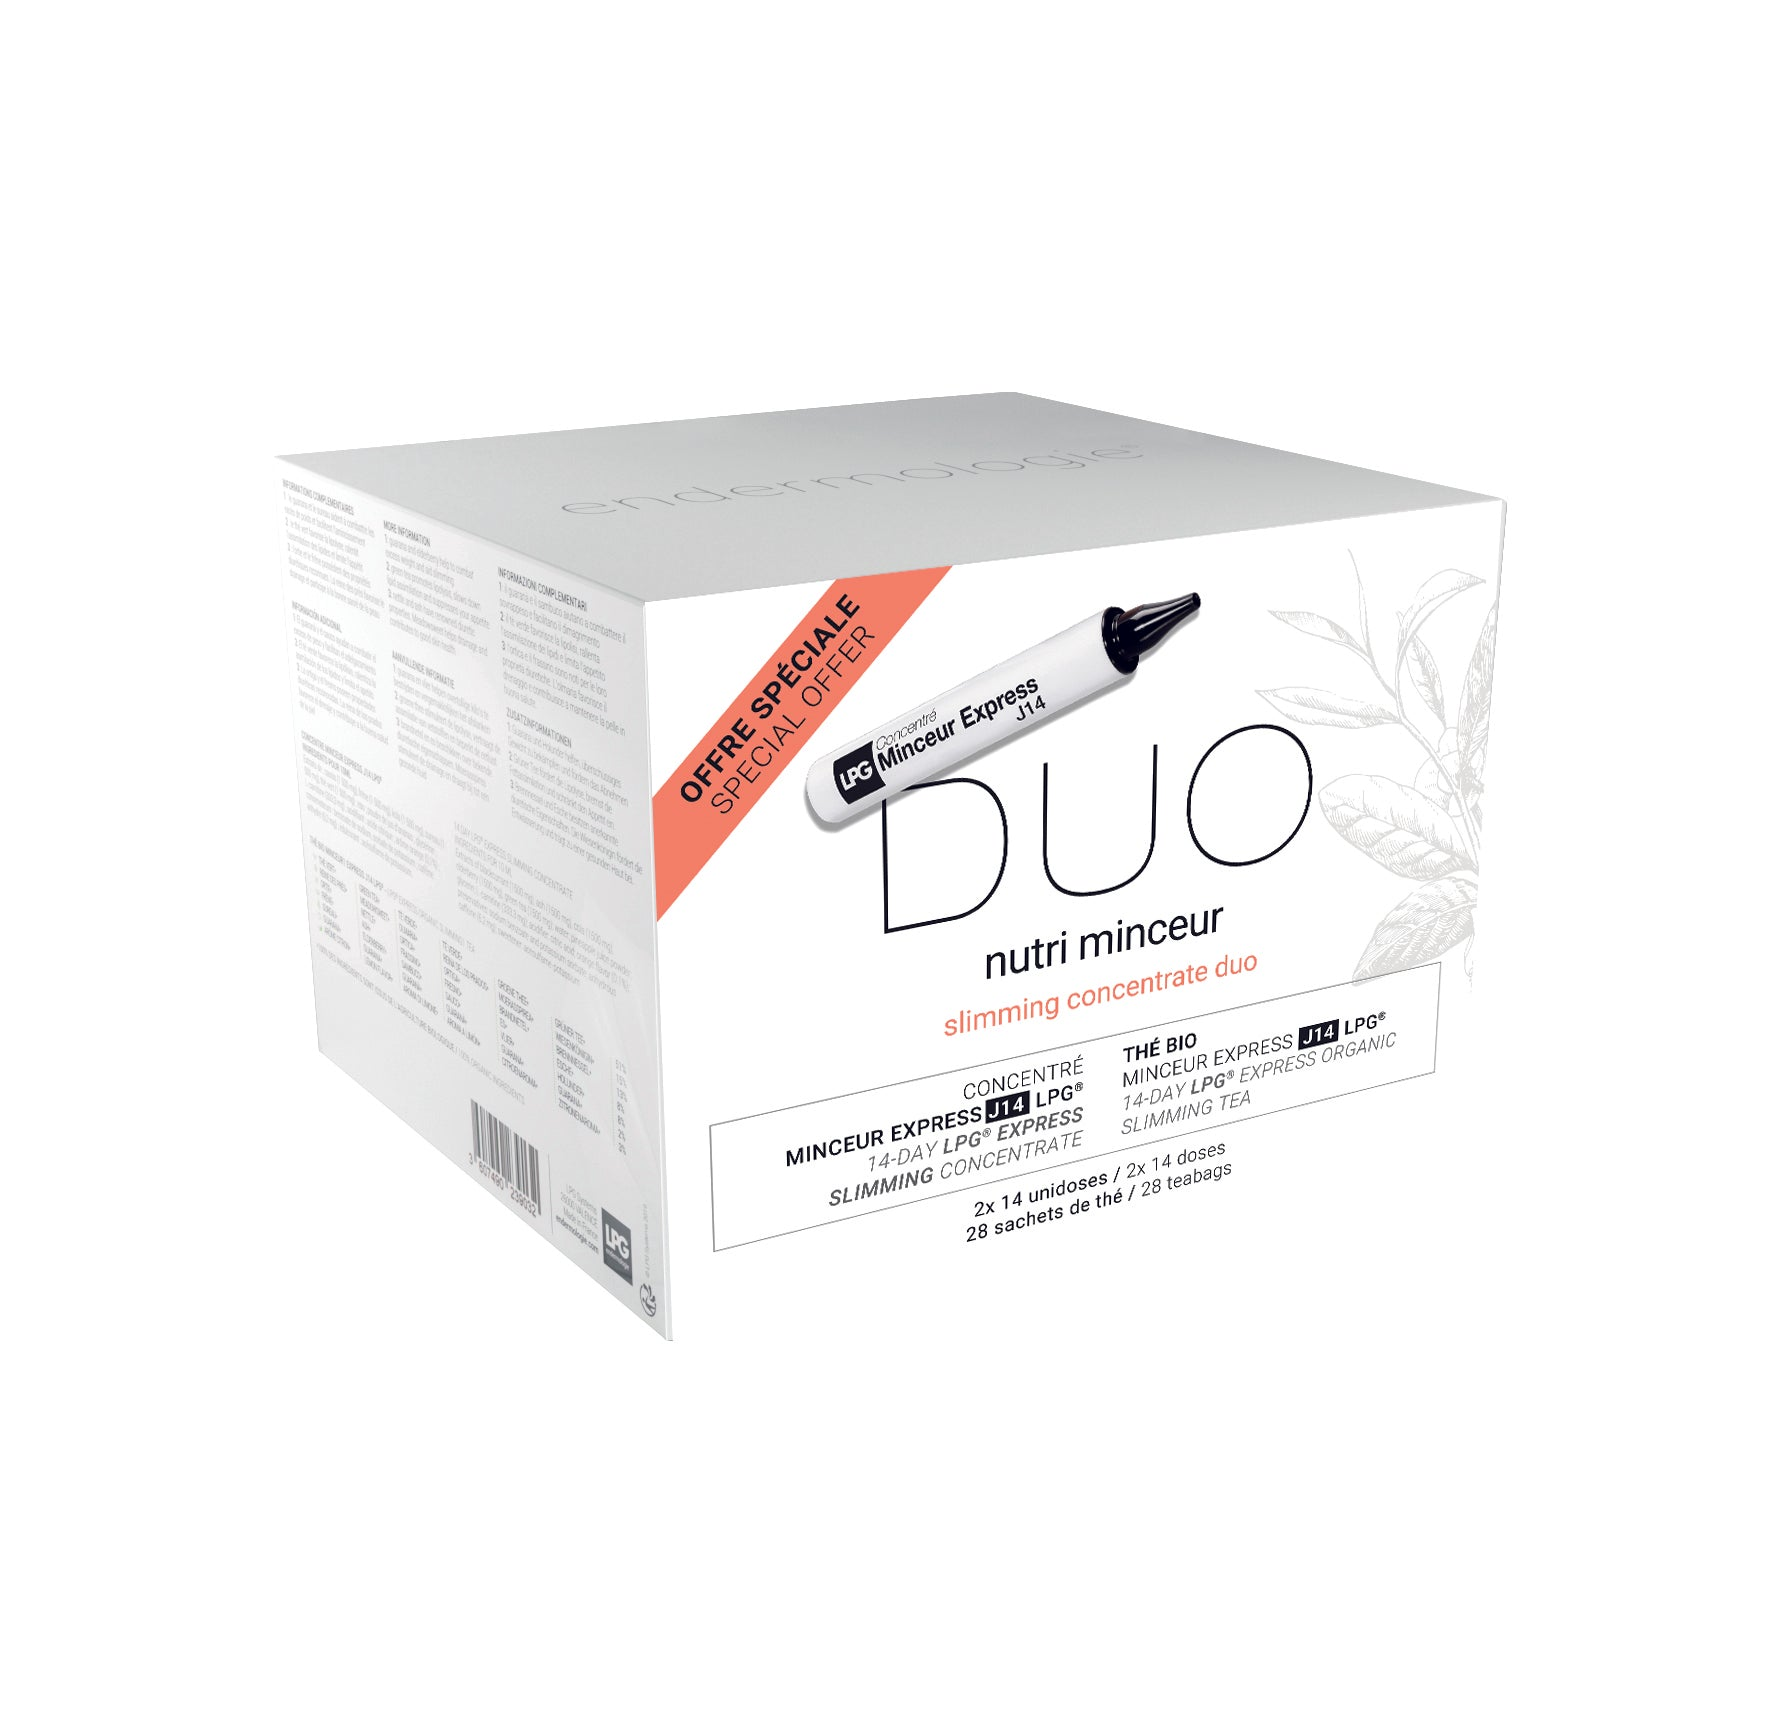 SLIMMING CONCENTRATE DUO PAKKET